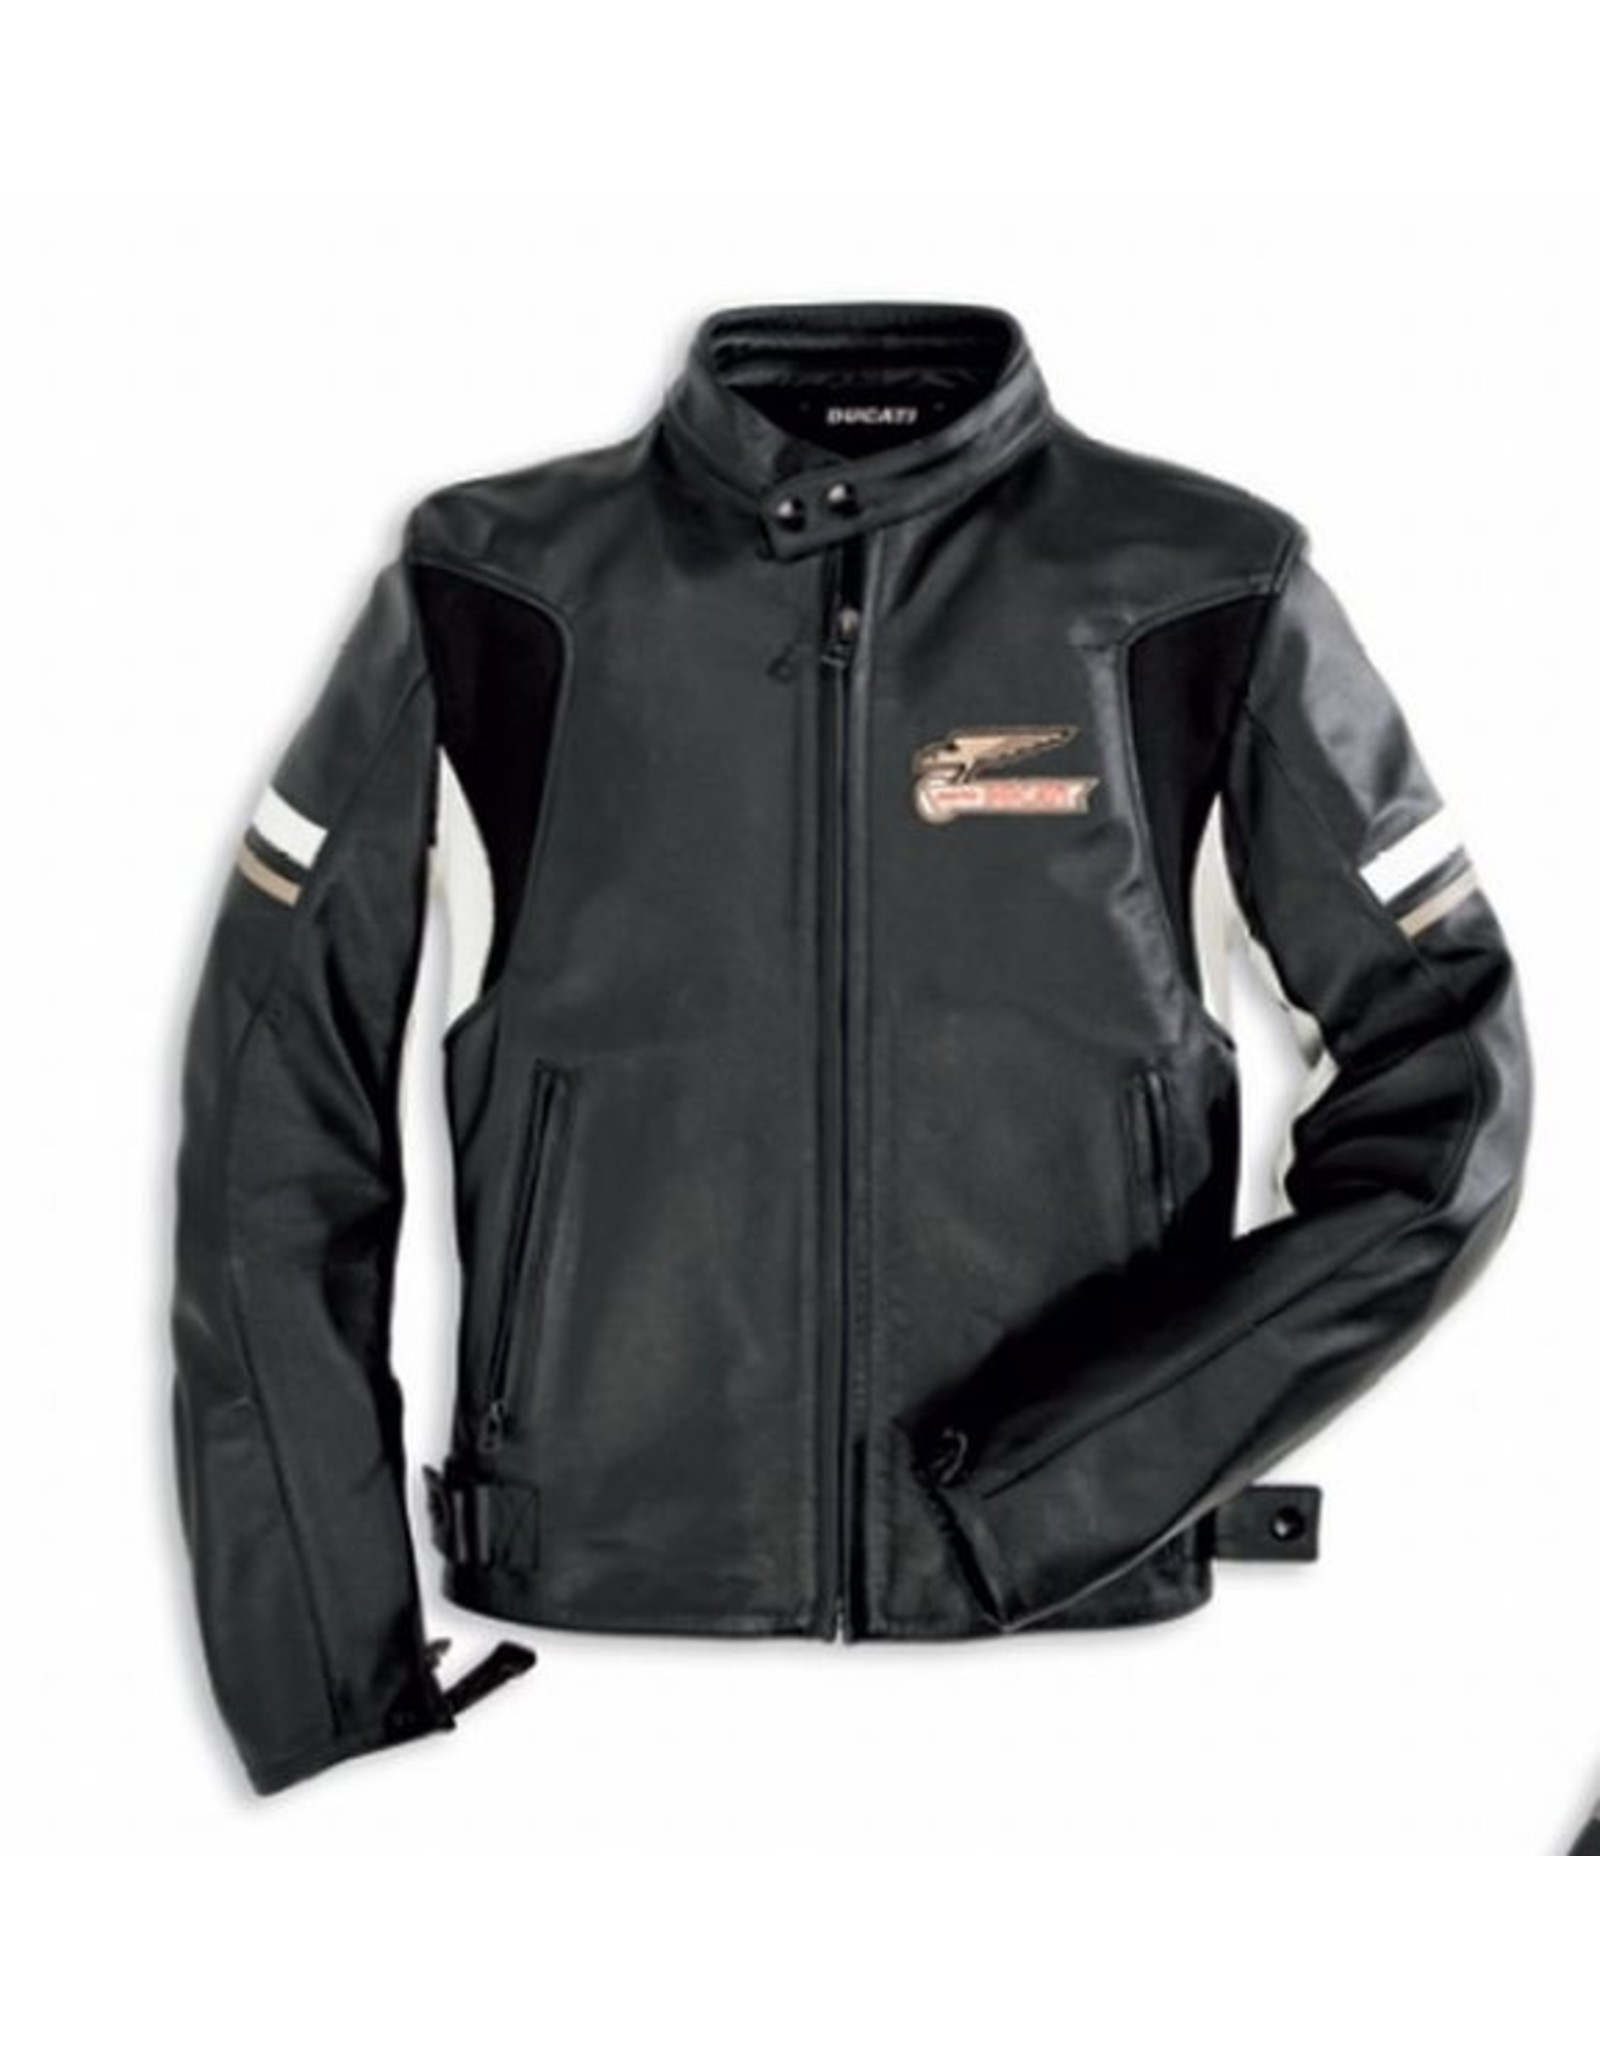 Dainese DUCATI EAGLE LEATHER  JACKET VINTAGE LOOK  DAINESE